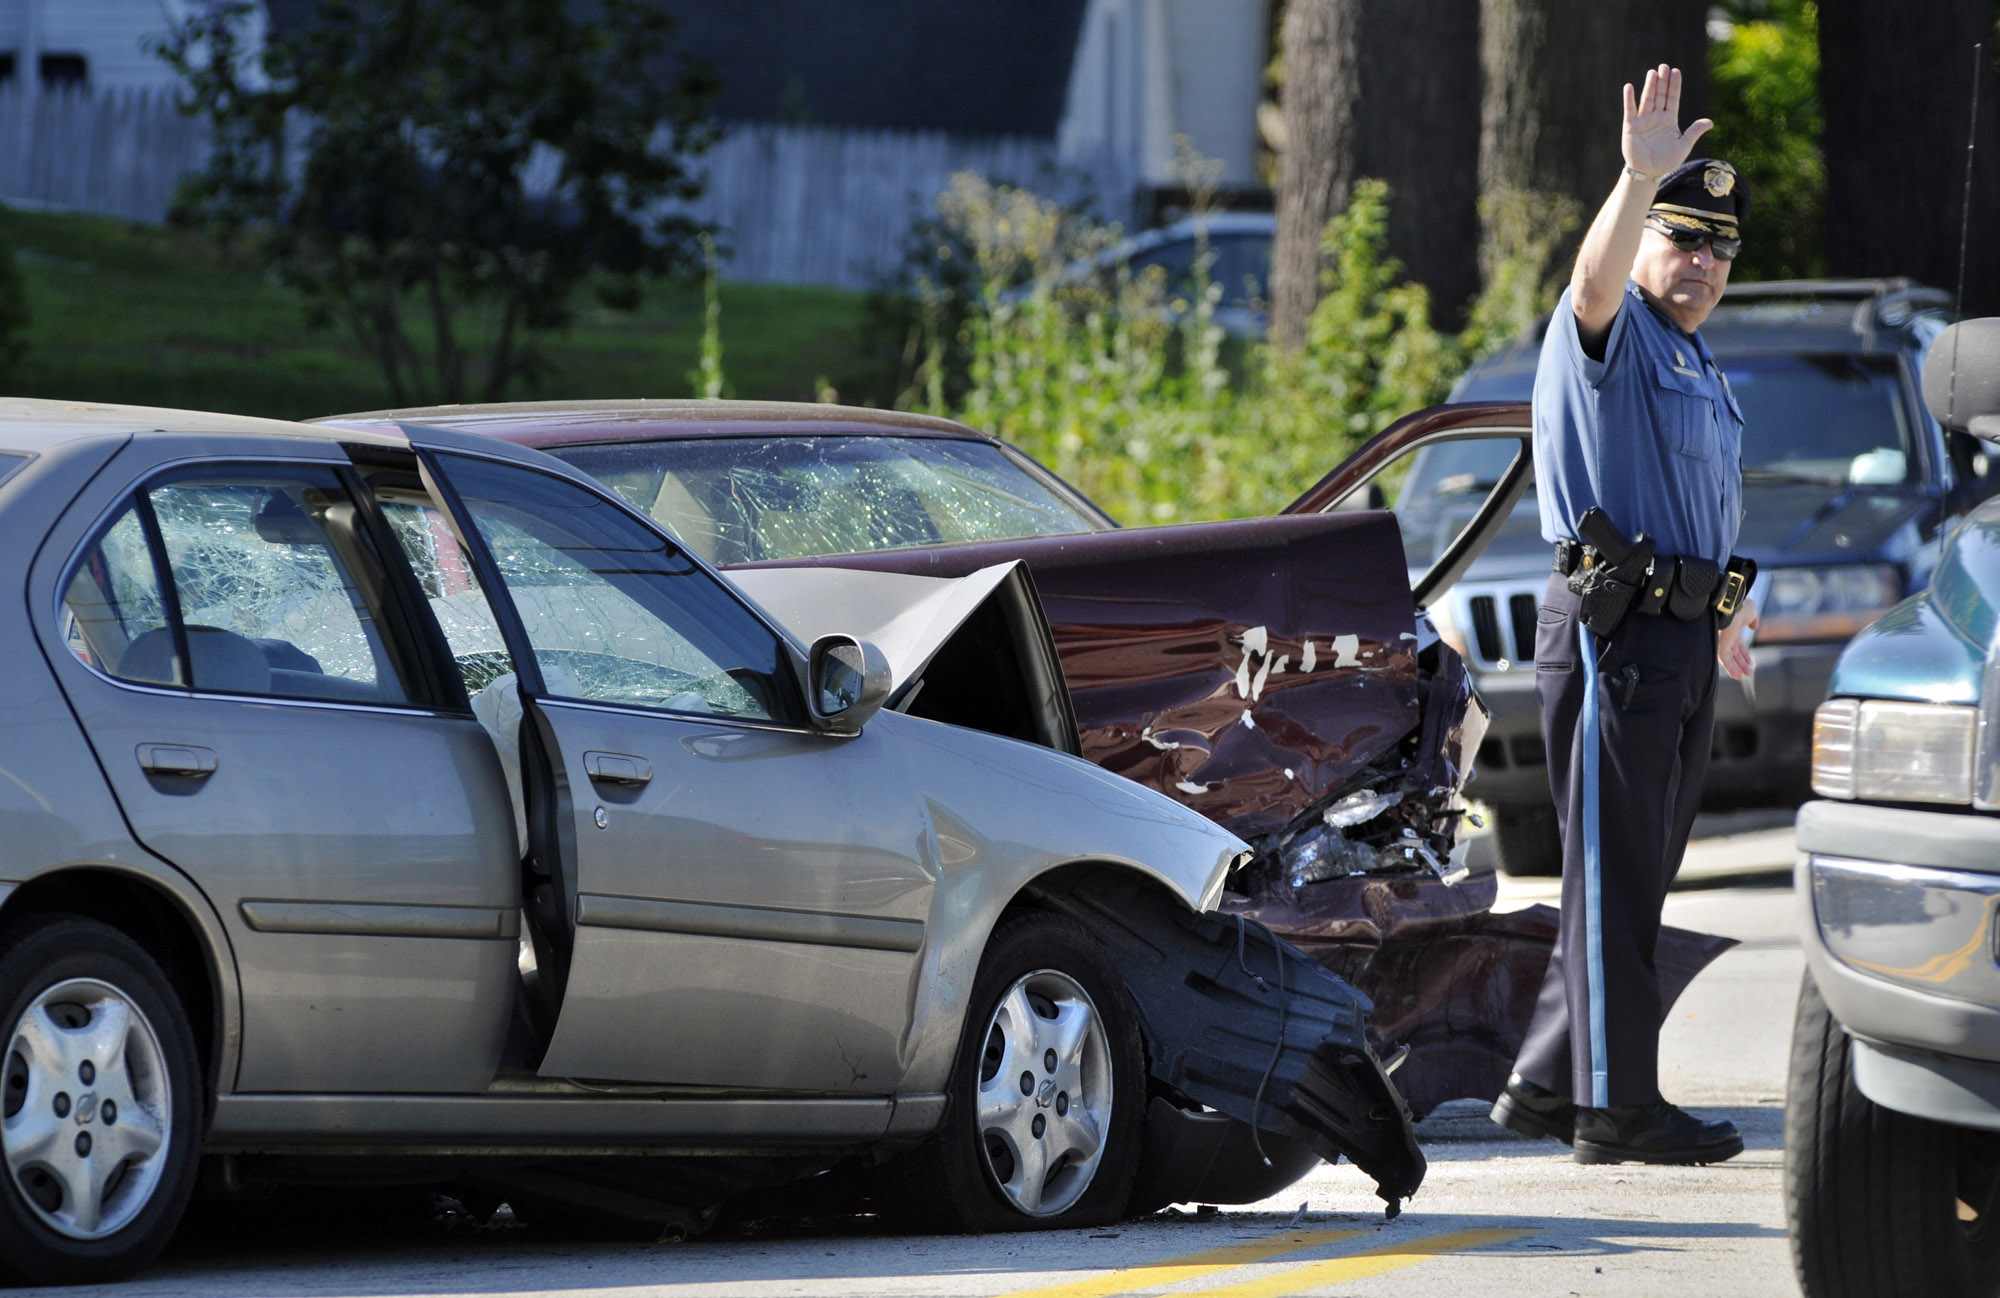 Injured In Accident Can Undocumented Immigrants Make Claims After Car Accidents